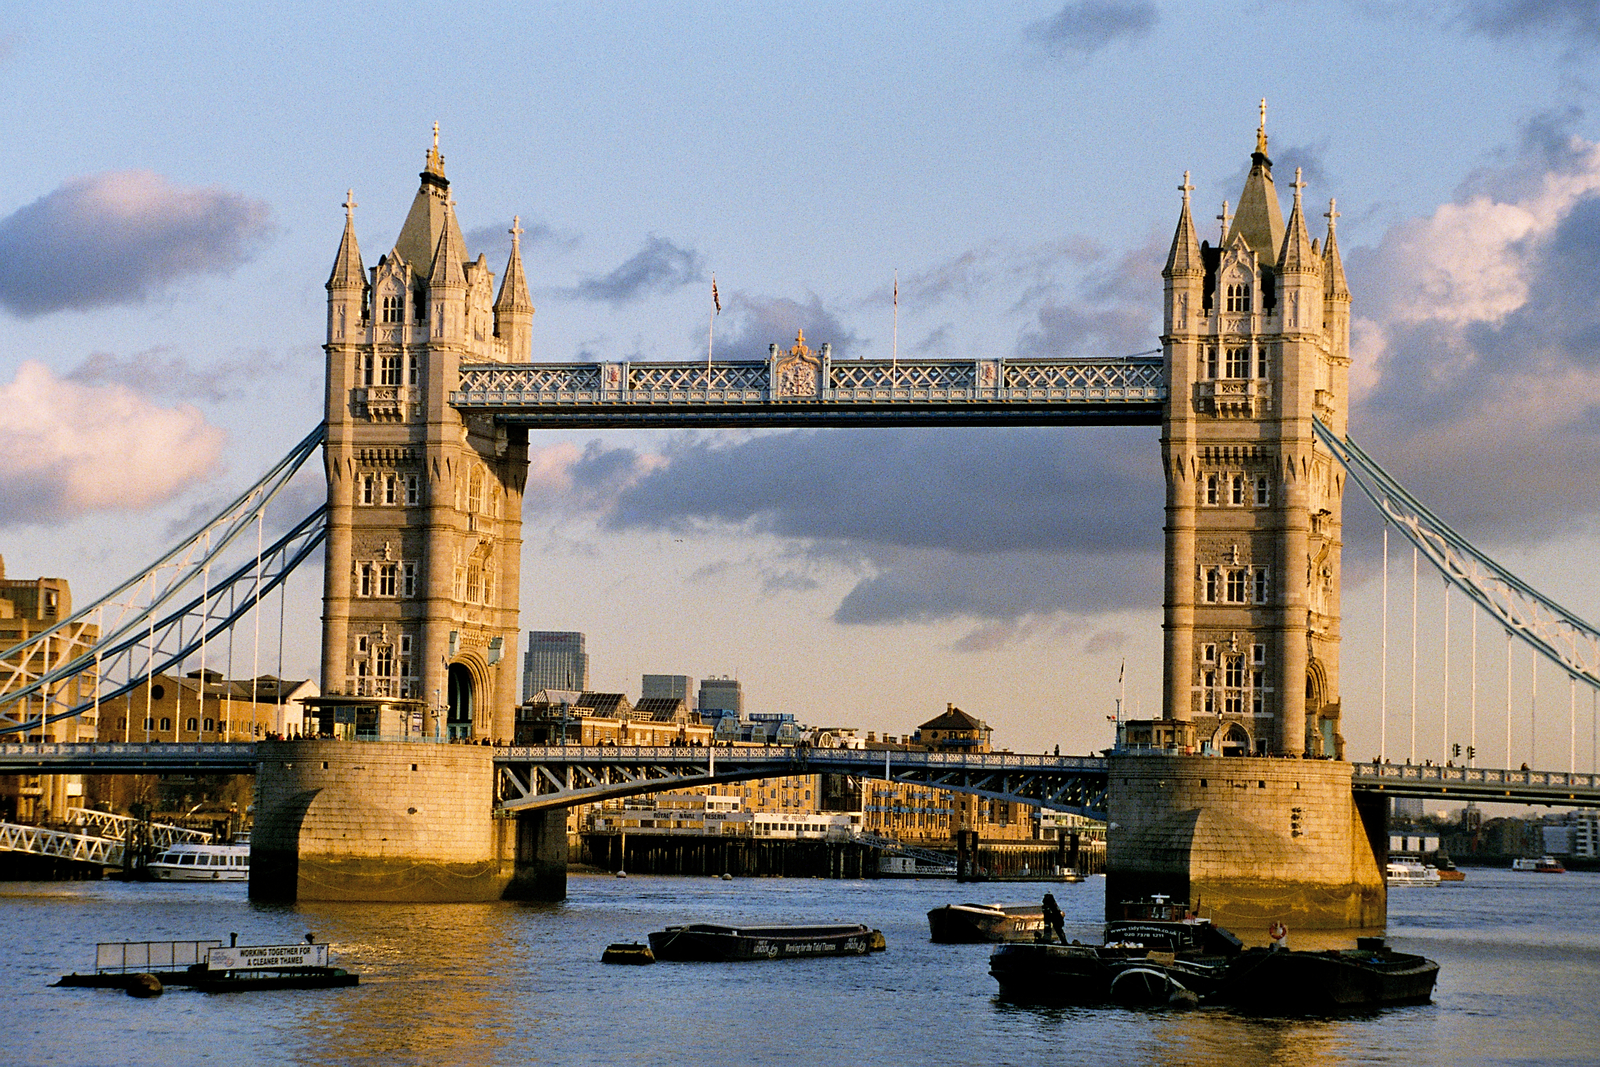 Tower_Bridge_sunset_December_2006.jpg